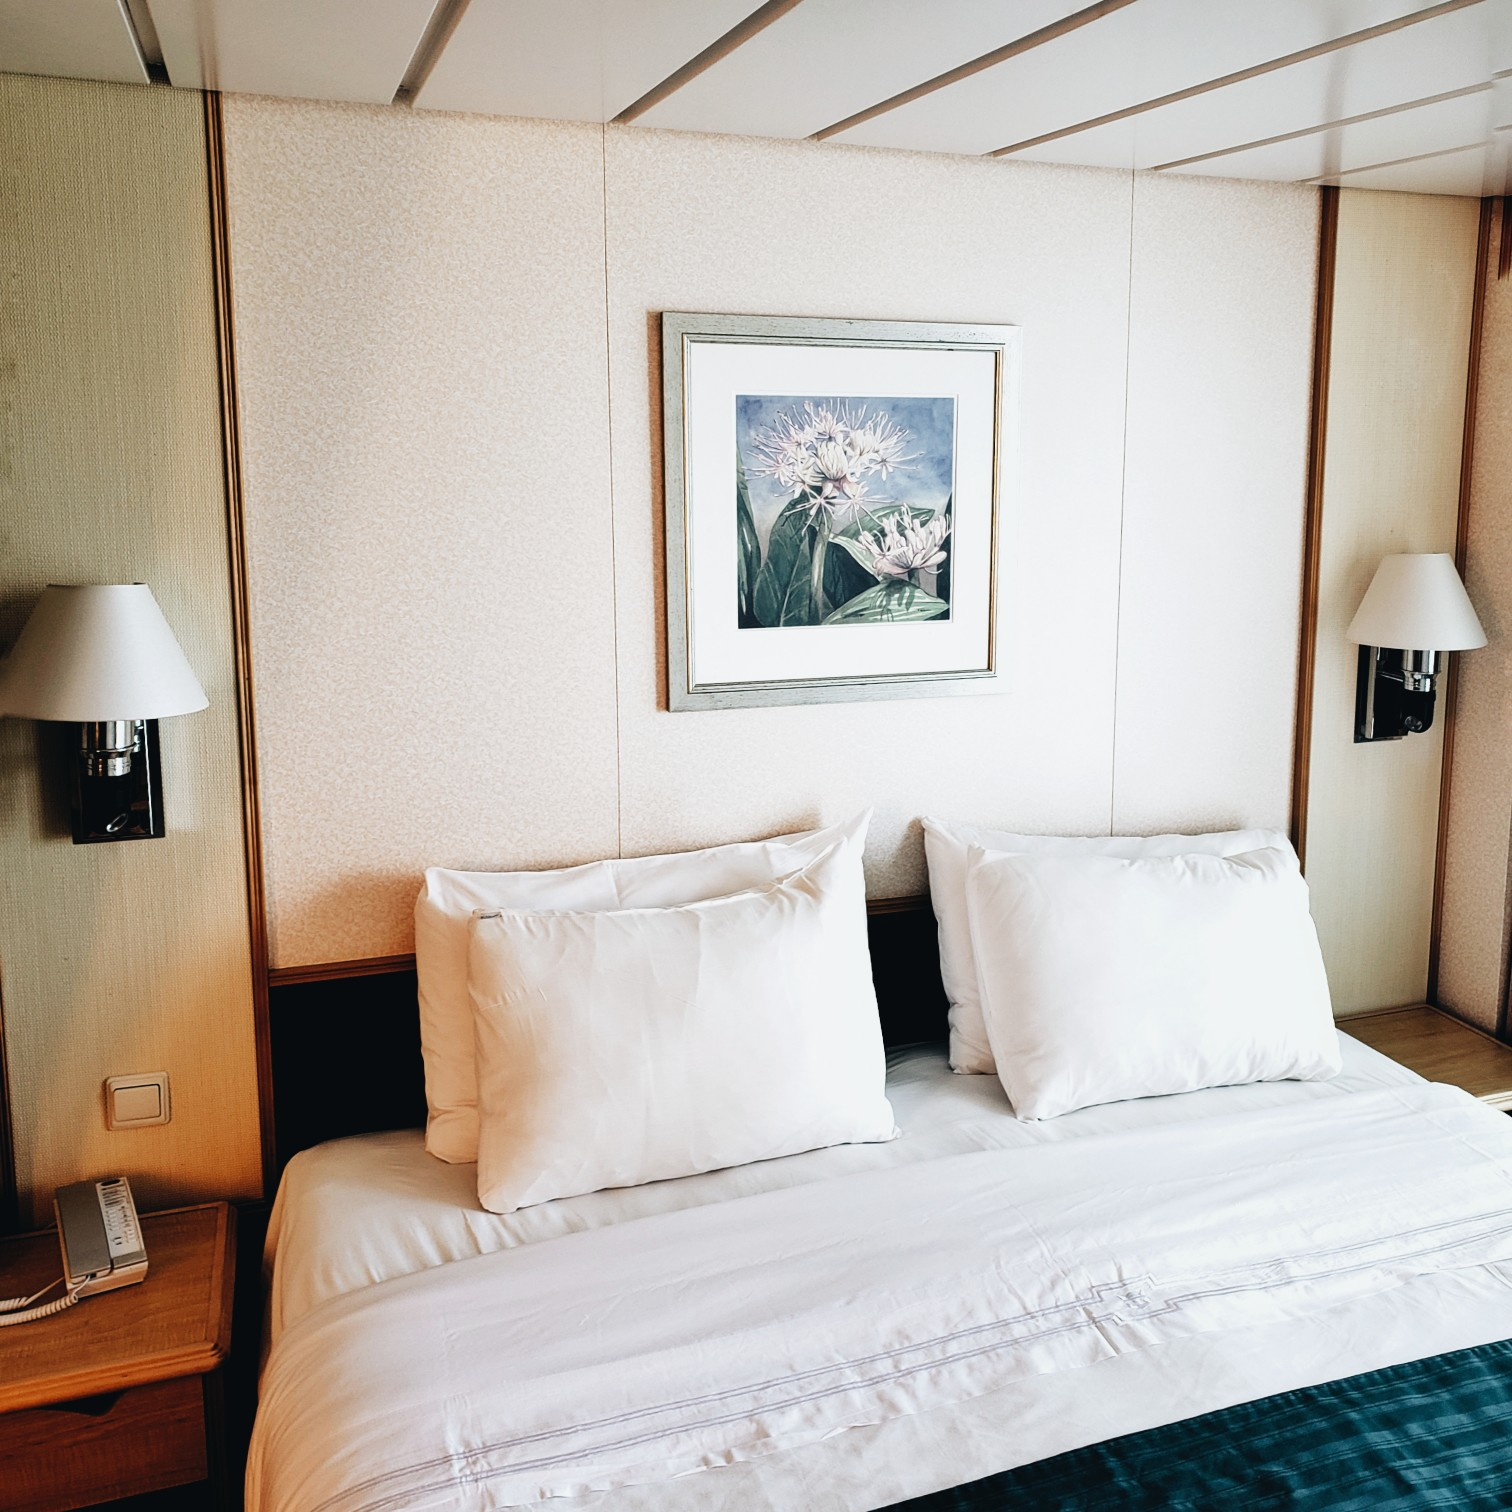 Royal Caribbean Cruise Getaway Balcony Room Accommodation